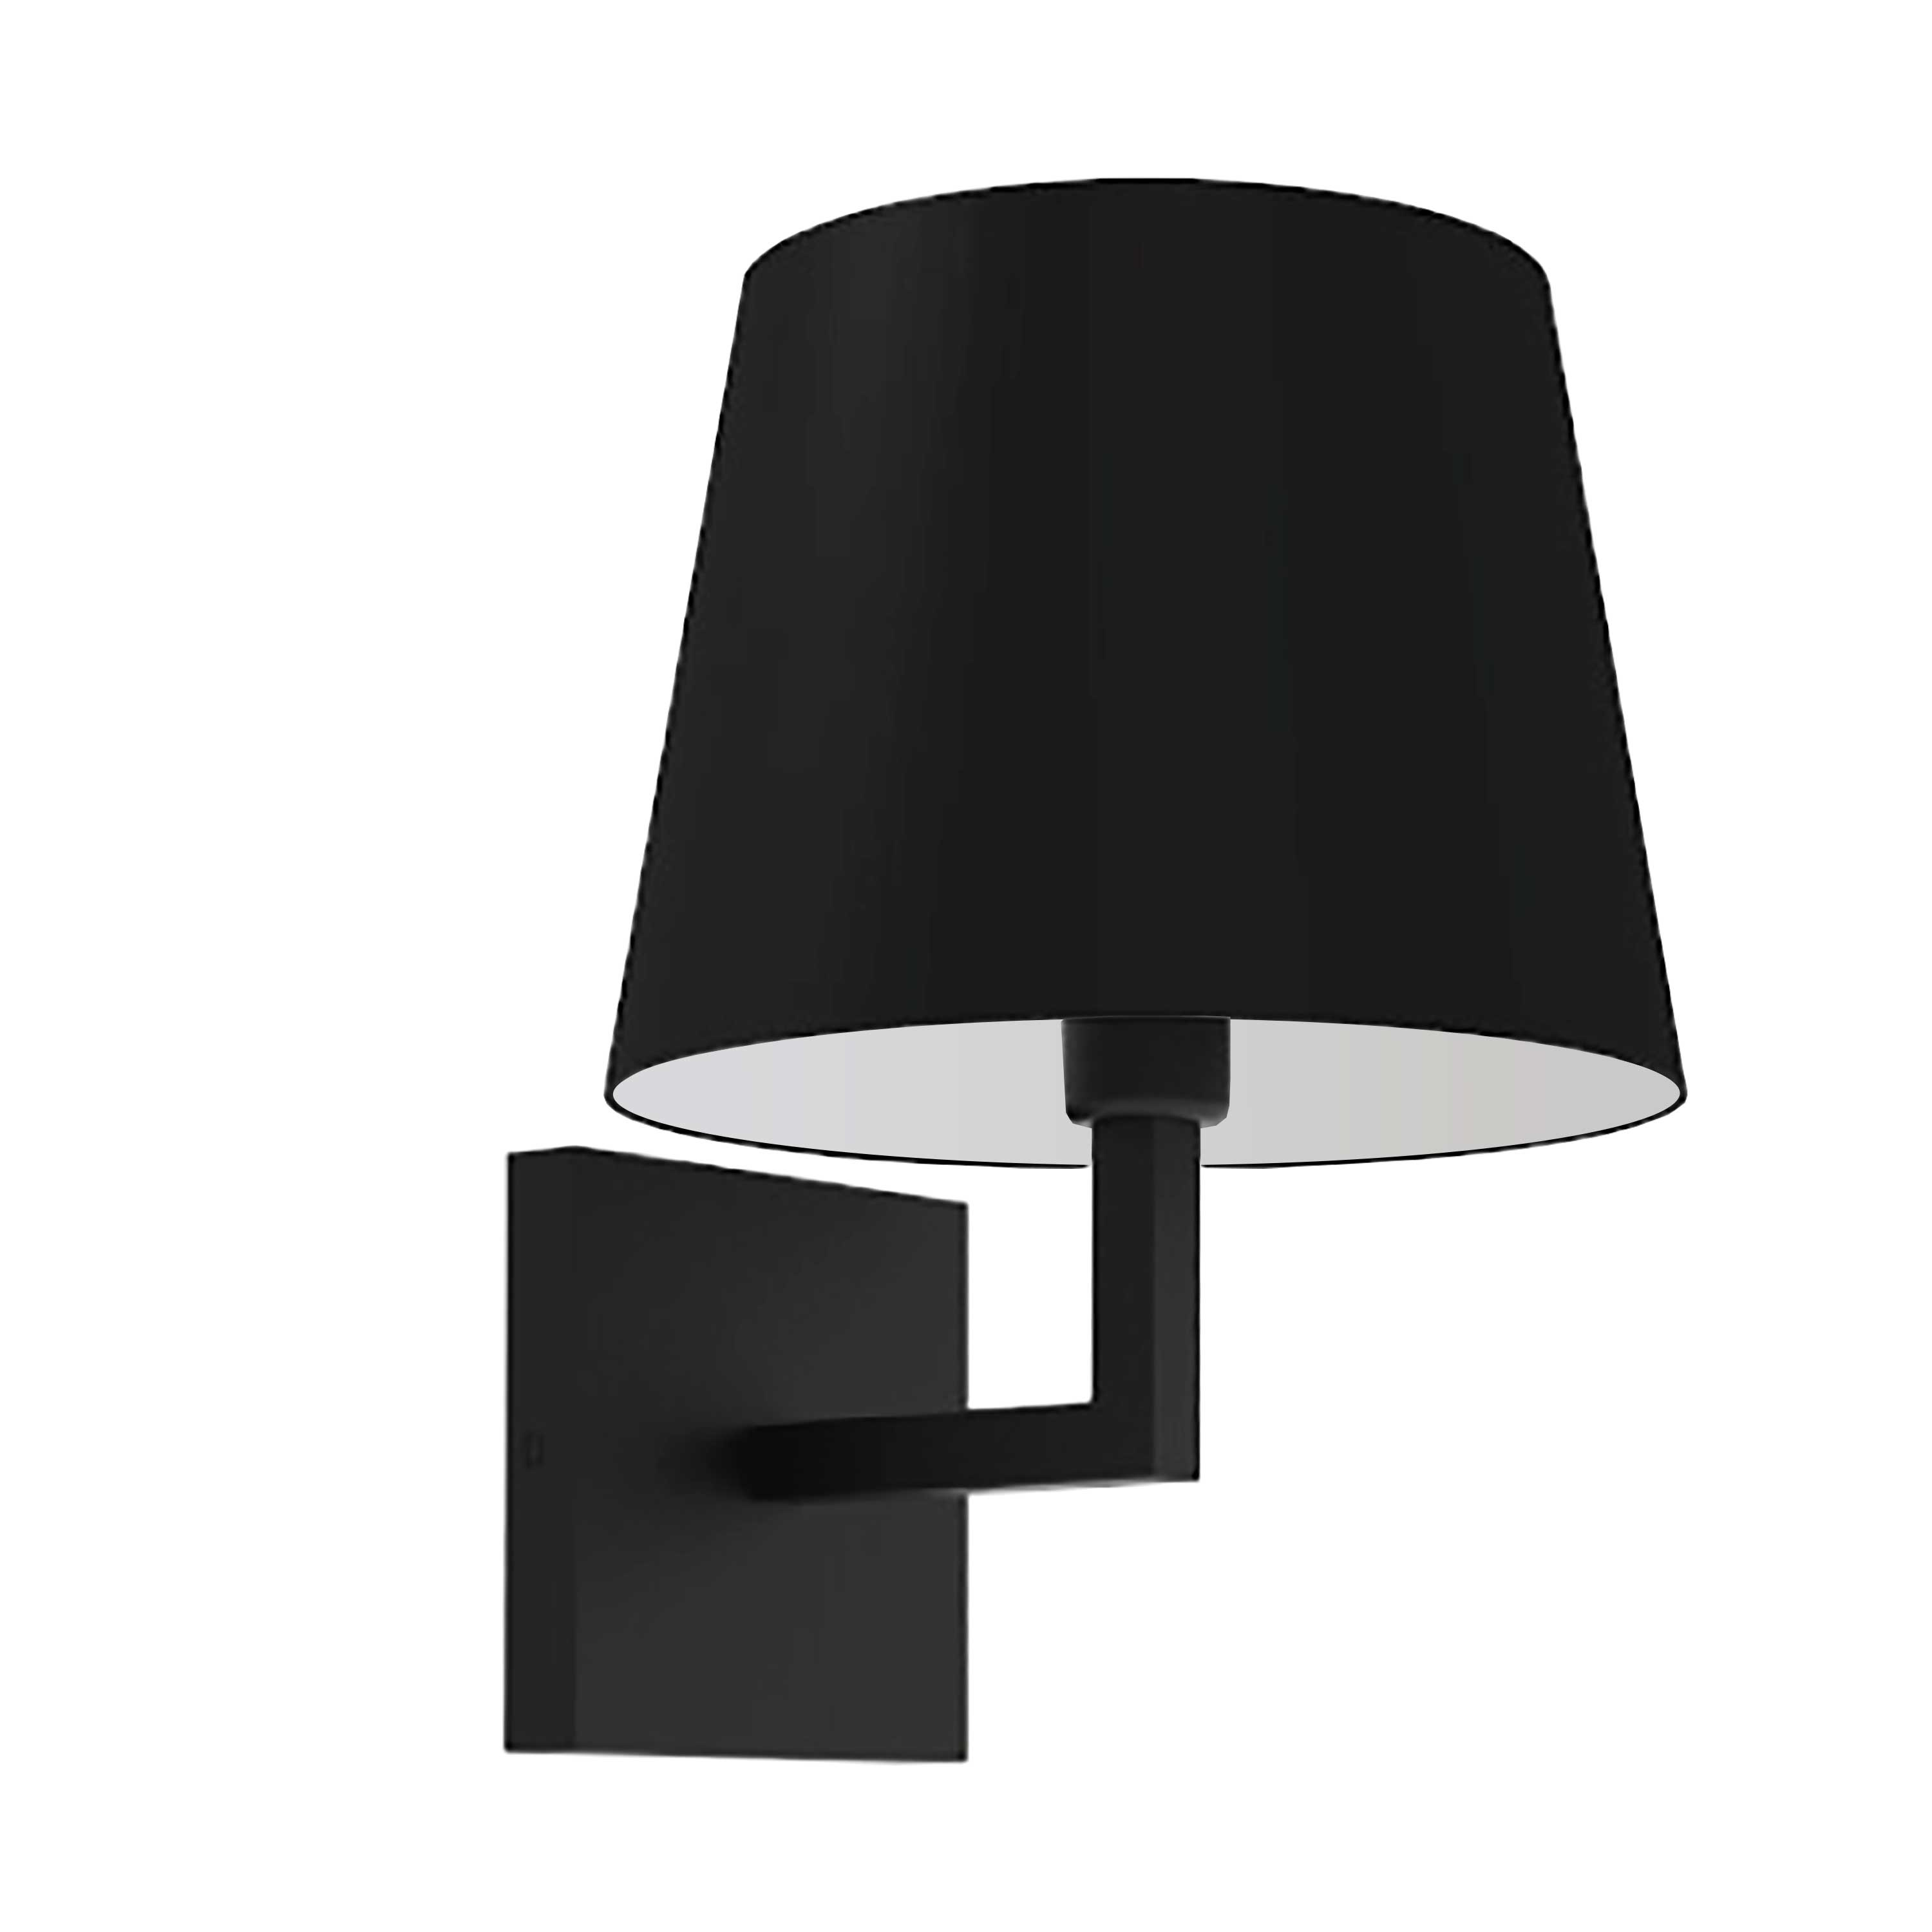 1LT Incandescent Wall Sconce,  MB w/ Black Shade